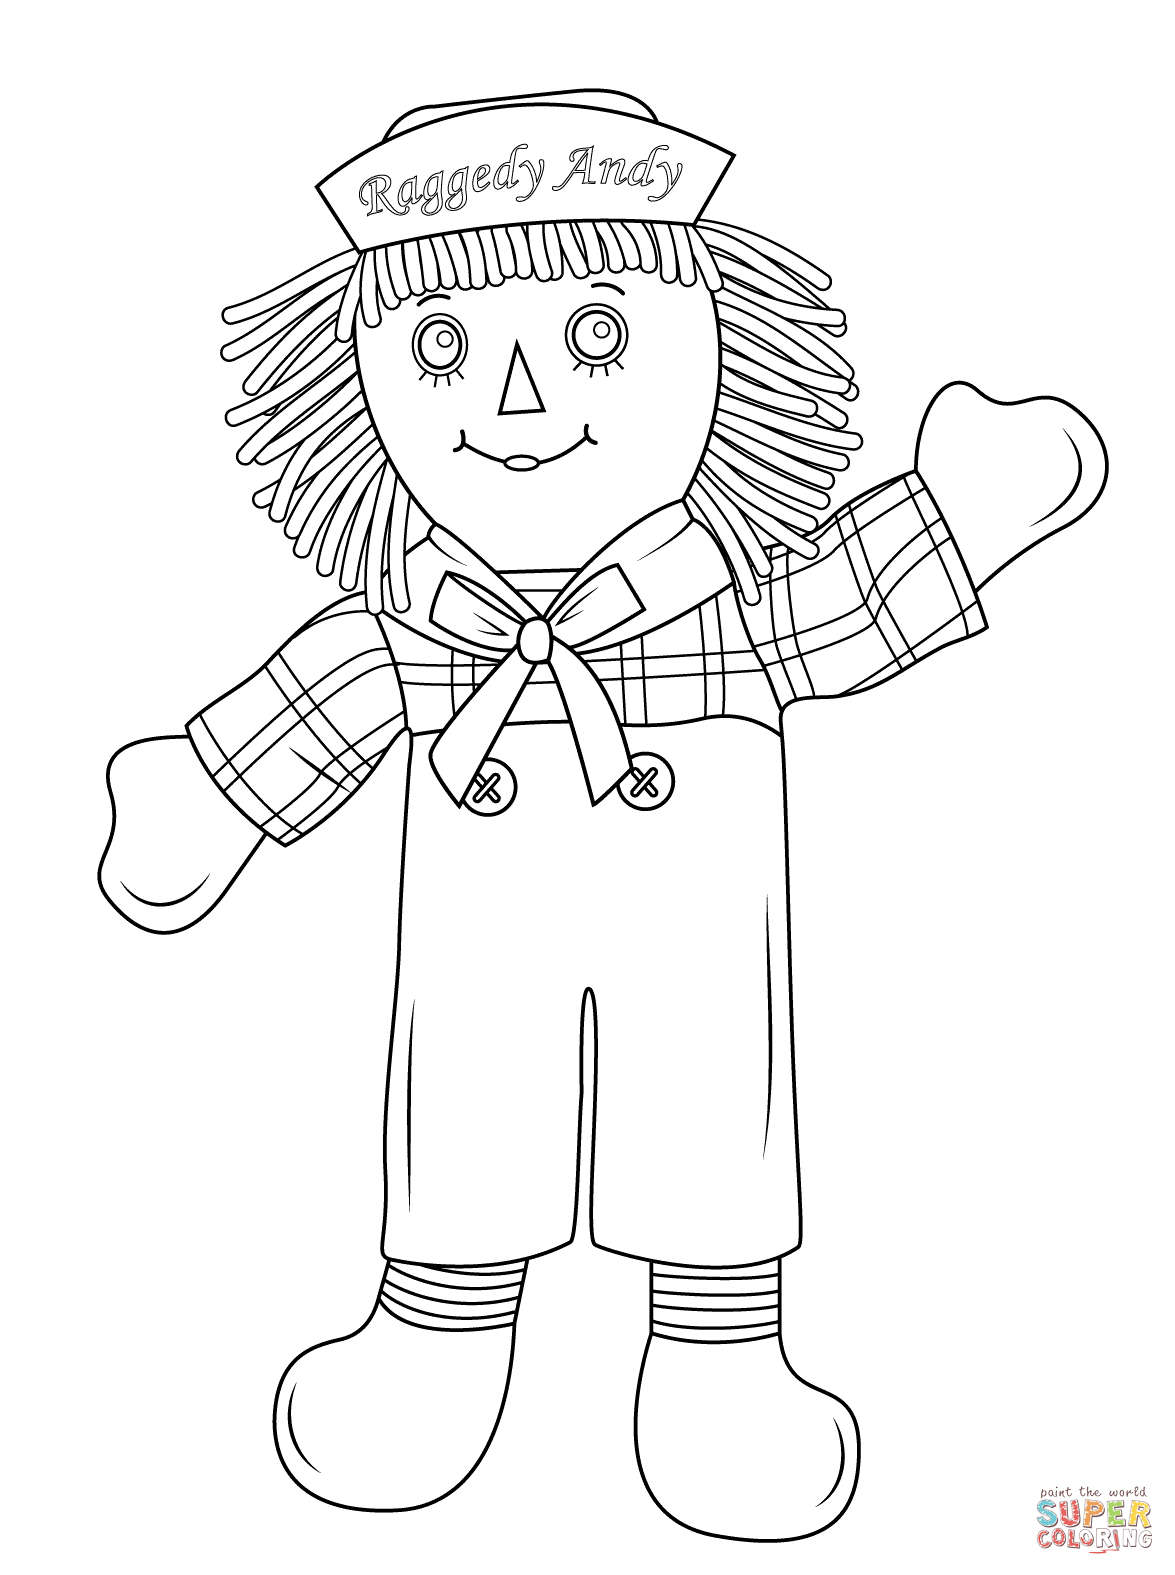 Cabbage Patch Coloring Pages - Coloring Home